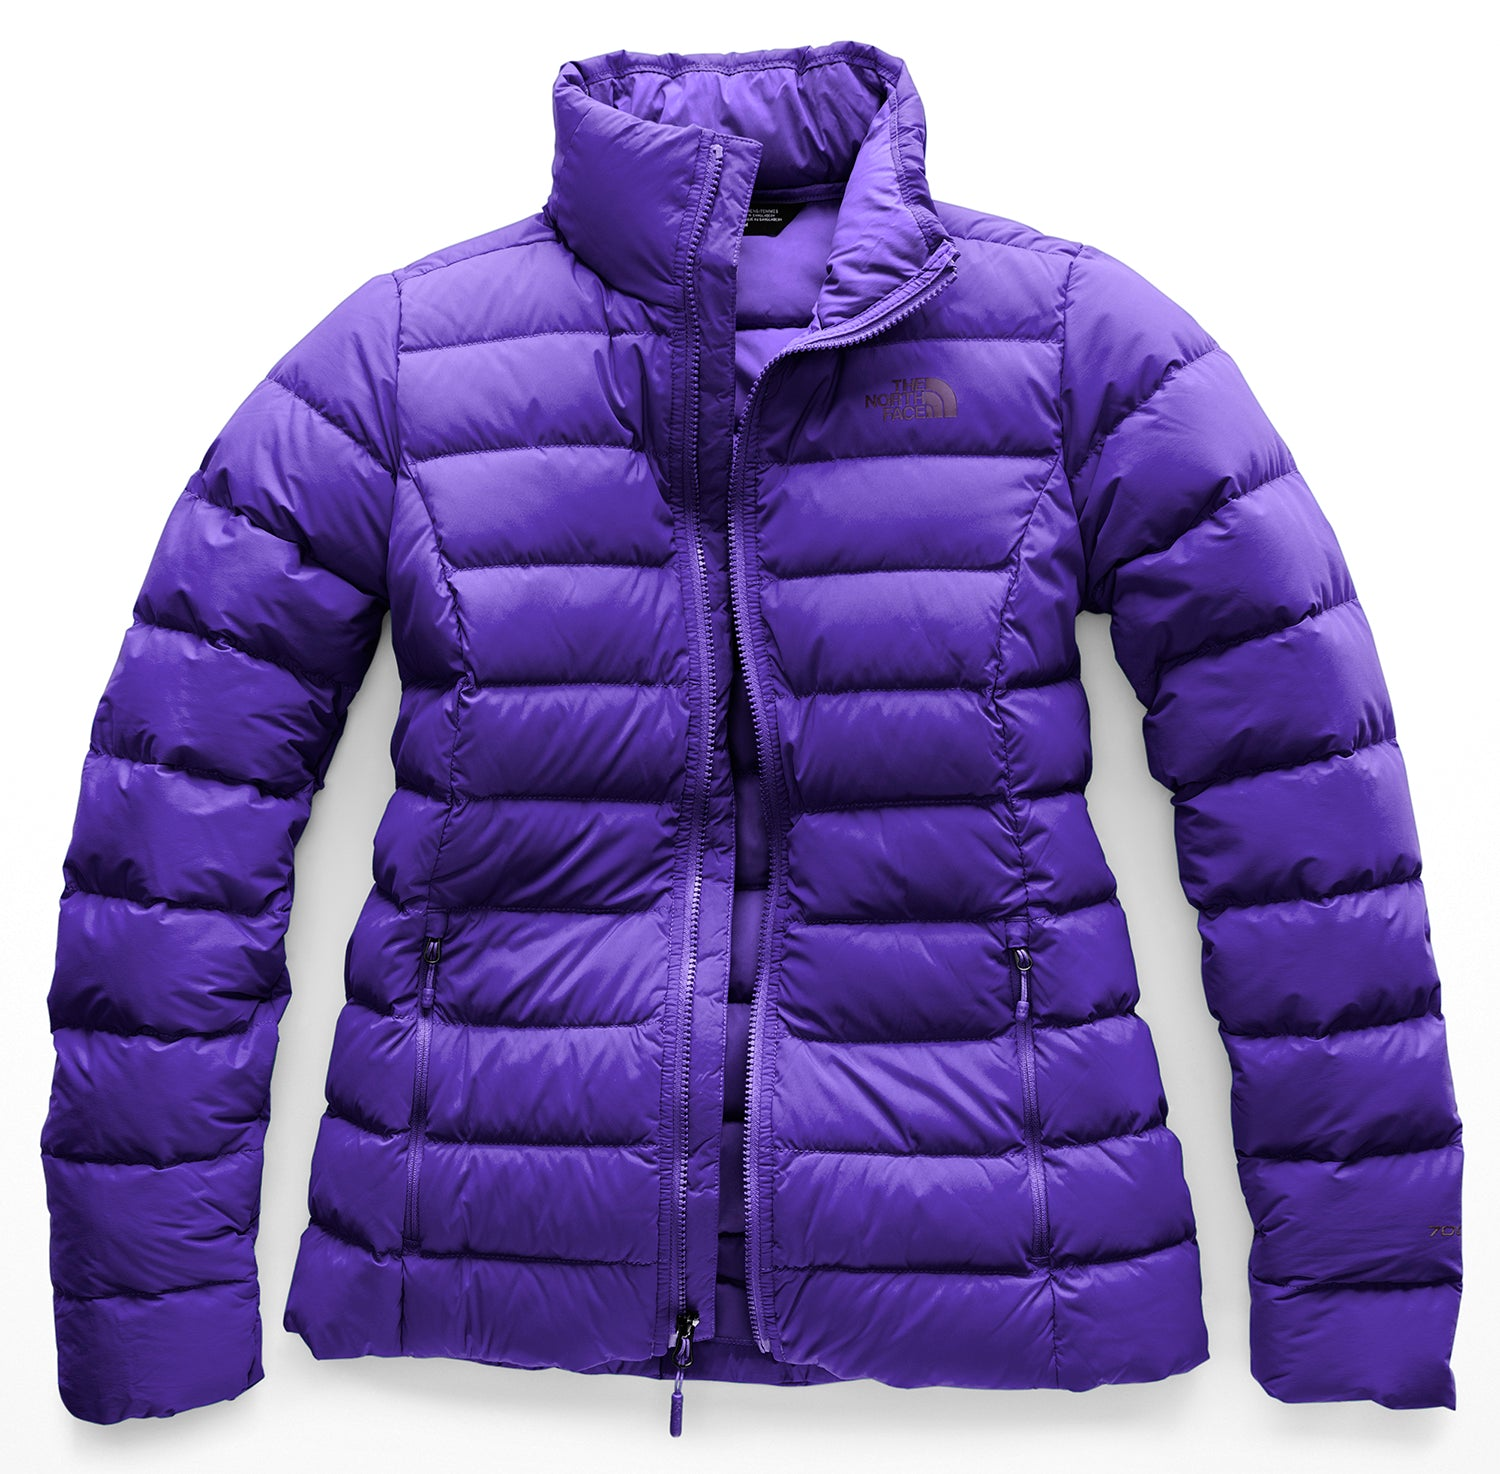 The North Face Stretch Down Jacket - Women s - Gear Coop 7f80fc0ec